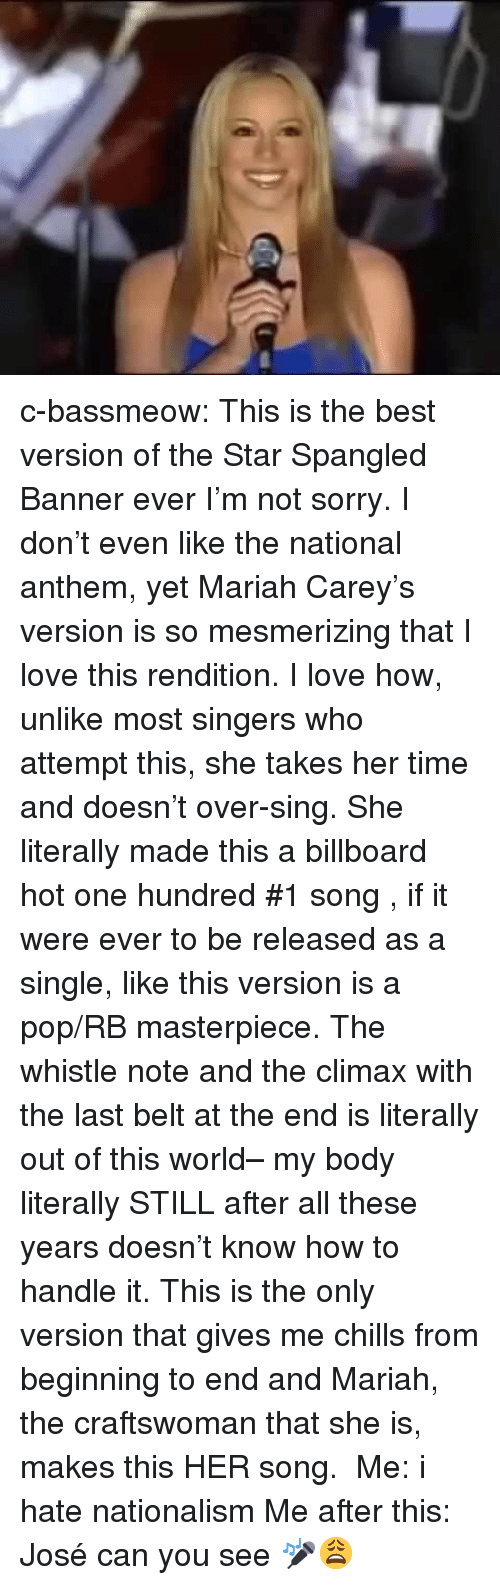 Billboard: c-bassmeow:  This is the best version of the Star Spangled Banner ever I'm not sorry. I don't even like the national anthem, yet Mariah Carey's version is so mesmerizing that I love this rendition. I love how, unlike most singers who attempt this, she takes her time and doesn't over-sing. She literally made this a billboard hot one hundred #1 song , if it were ever to be released as a single, like this version is a pop/RB masterpiece. The whistle note and the climax with the last belt at the end is literally out of this world– my body literally STILL after all these years doesn't know how to handle it. This is the only version that gives me chills from beginning to end and Mariah, the craftswoman that she is, makes this HER song.  Me: i hate nationalism Me after this: José can you see 🎤😩